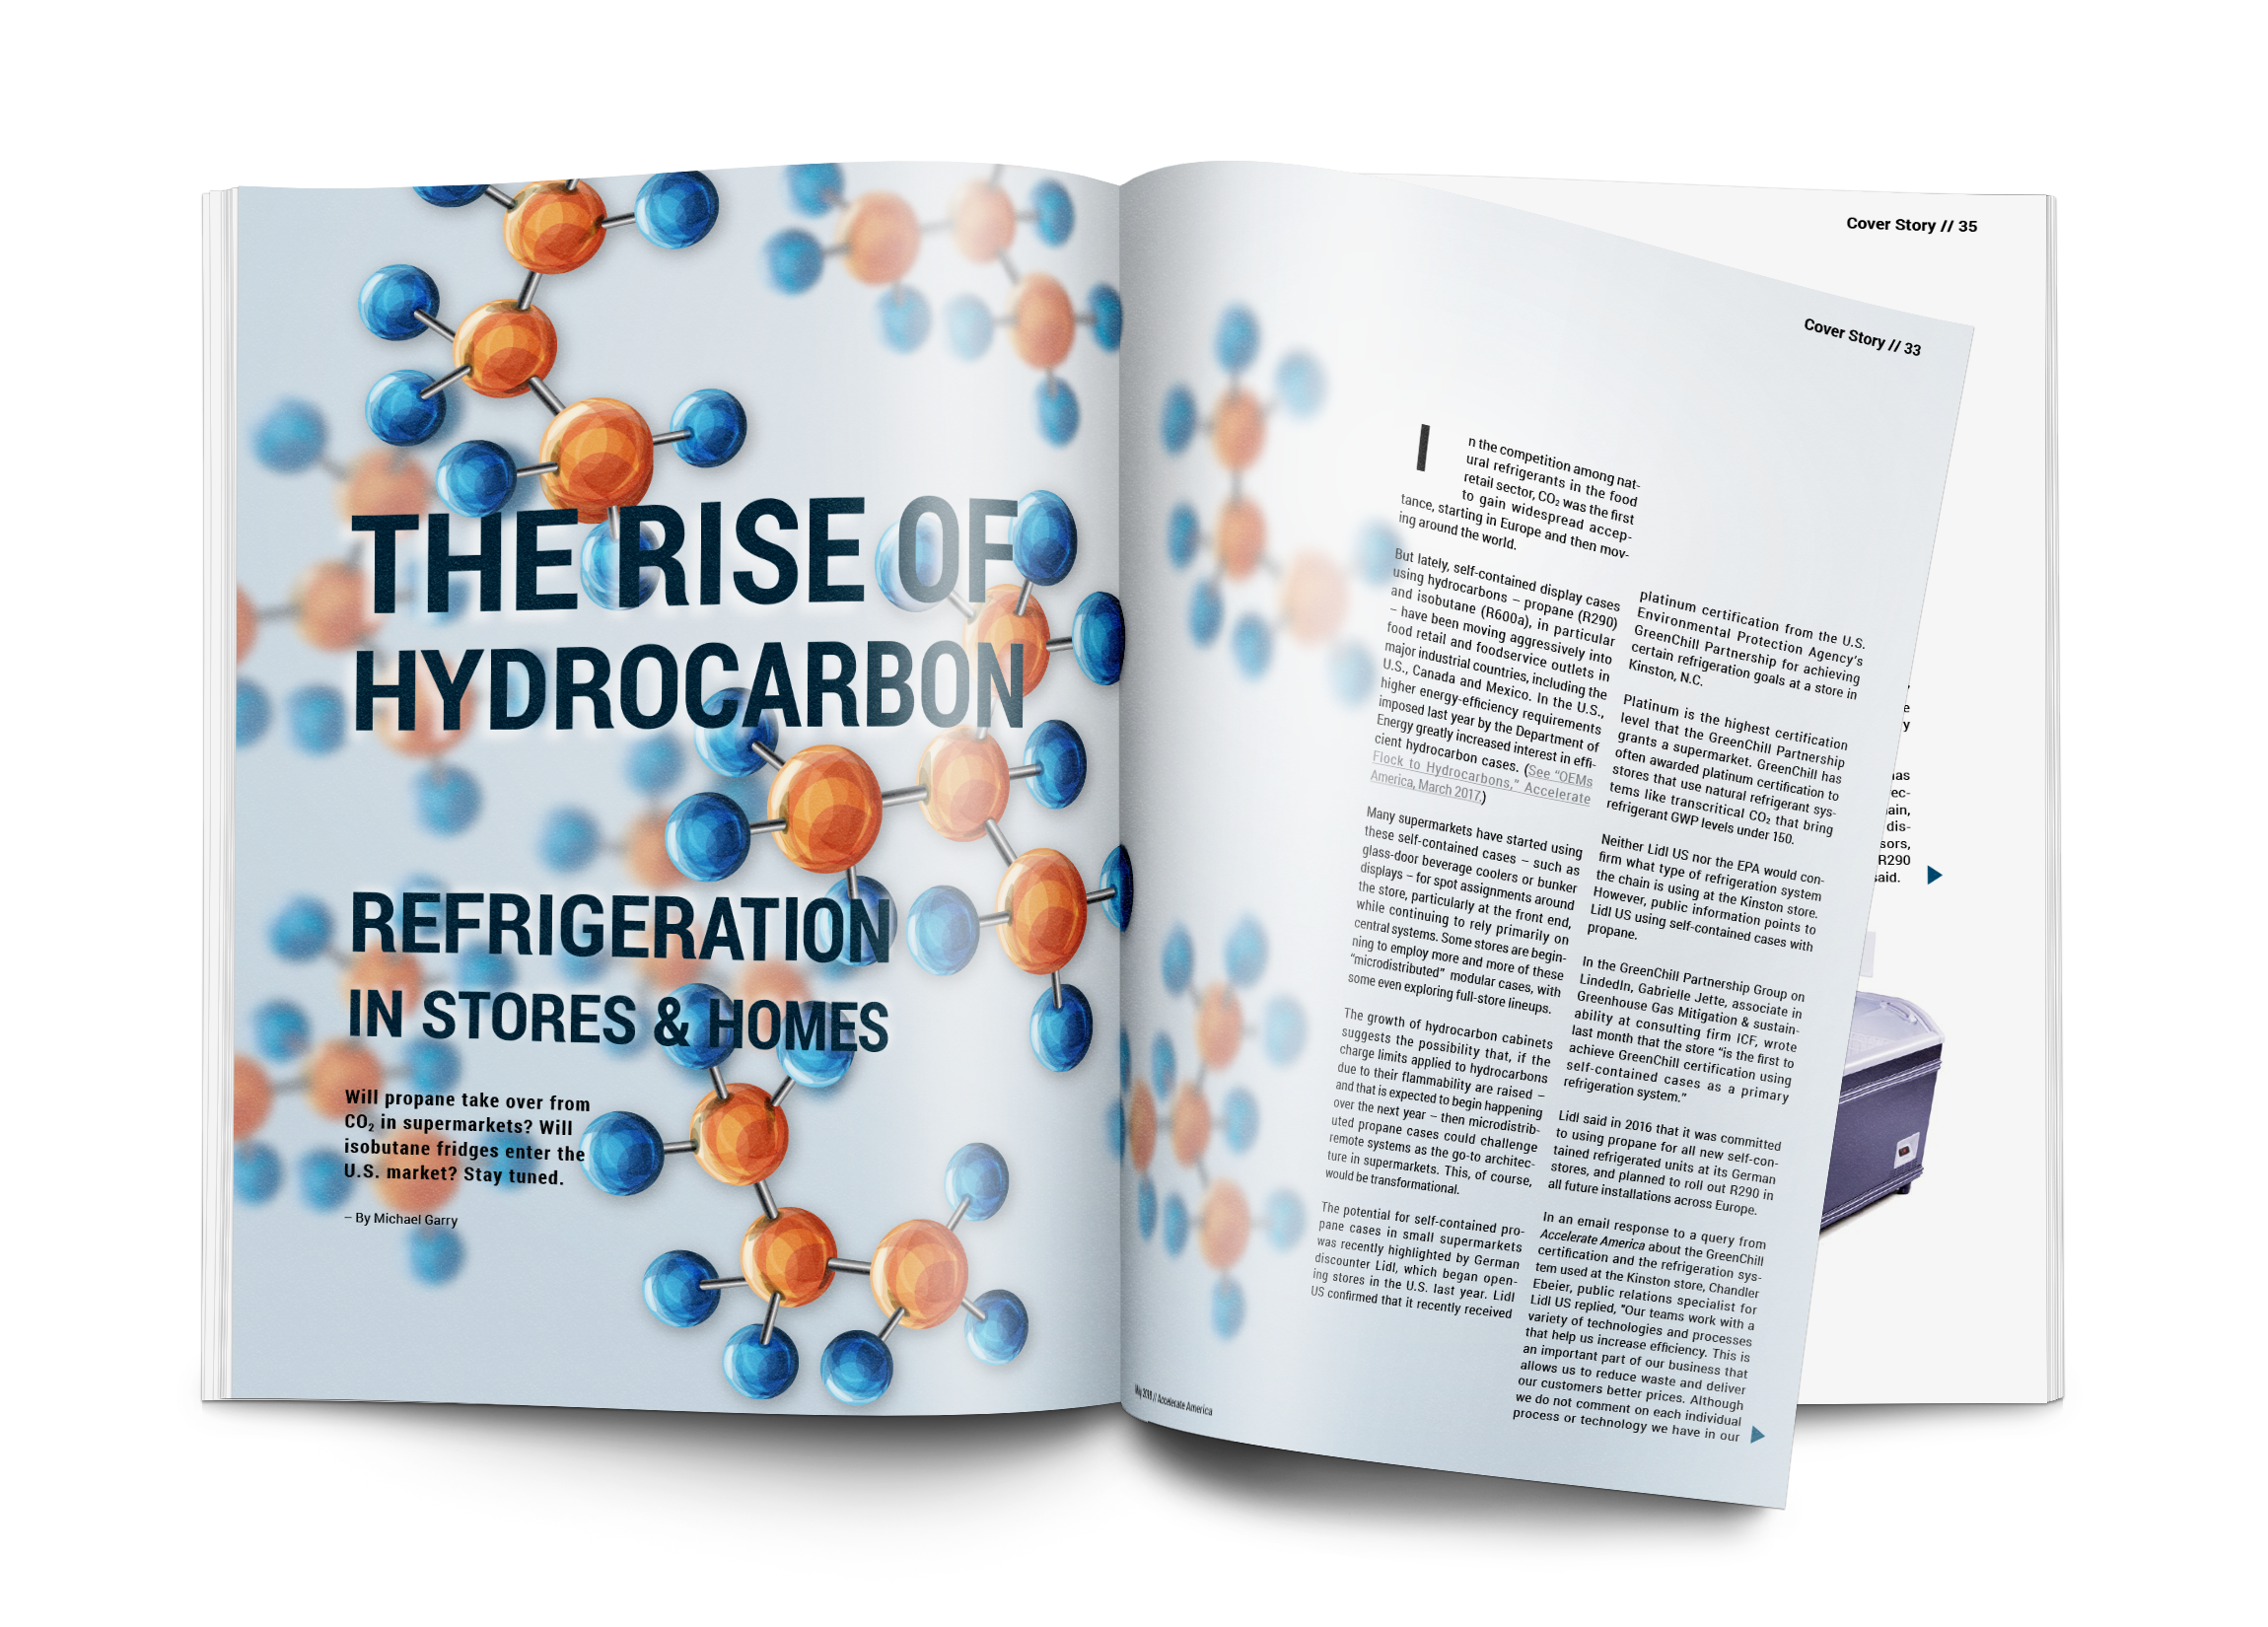 The Rise of Hydrocarbons in Stores and Homes